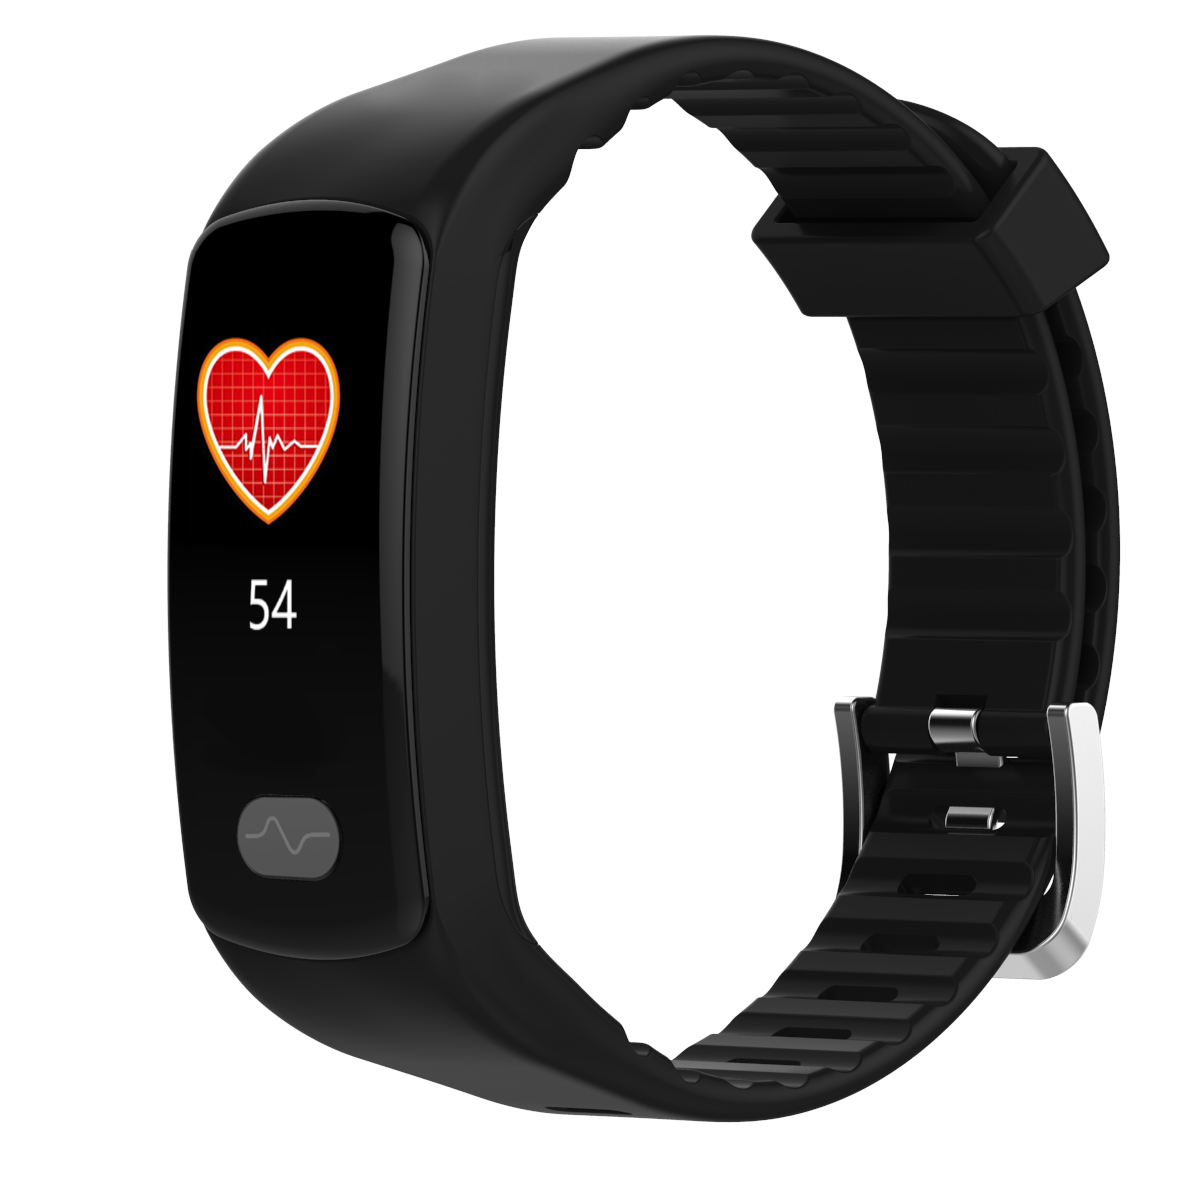 E07 Smart Bracelet Heart Rate Monitor Fitness Tracker Smart Wristband ECG/PPG Blood Pressure Smart Band Watch for IOS Android стоимость